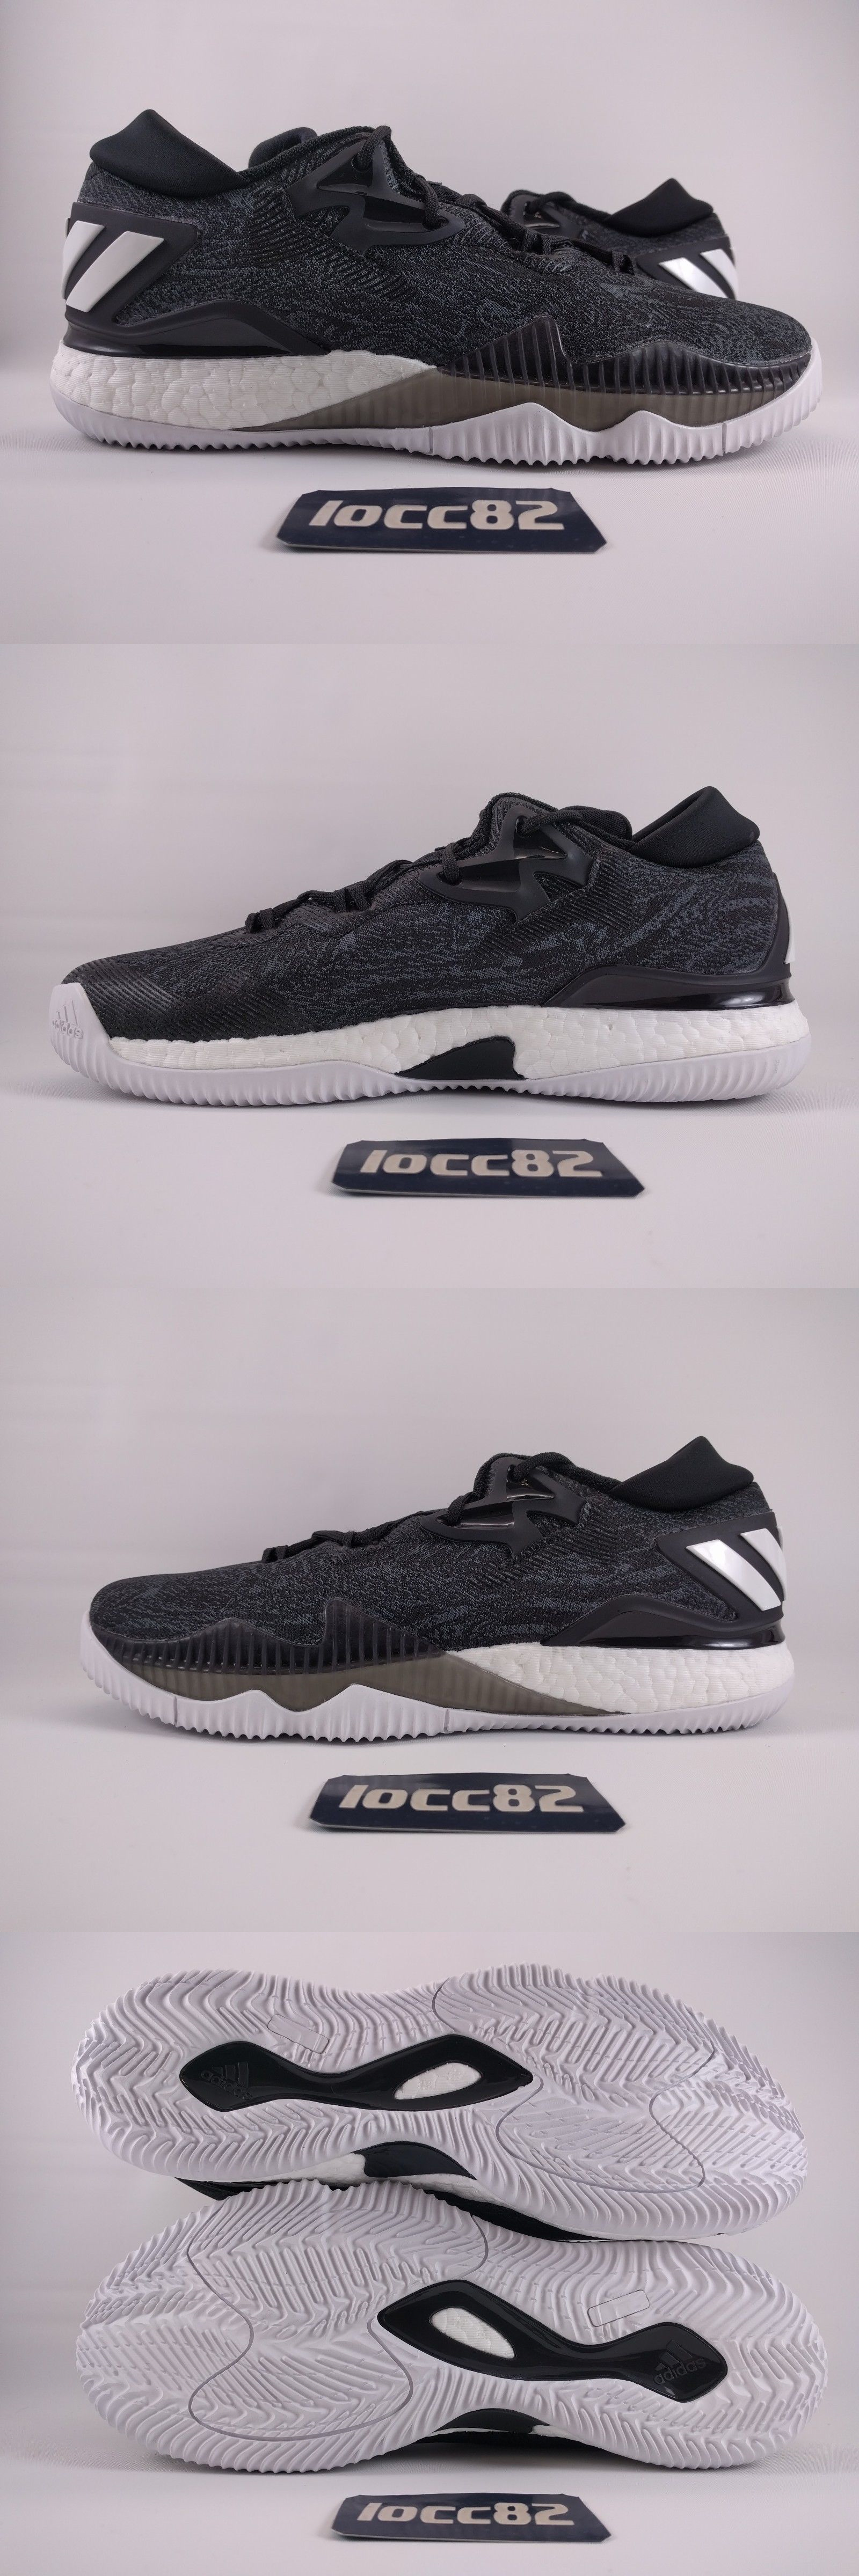 Adidas crazylight boost low 2016 bred black red mens basketball shoes - Basketball Adidas Mens Crazylight Boost 2016 Basketball Shoes Sz 10 B42722 Black White